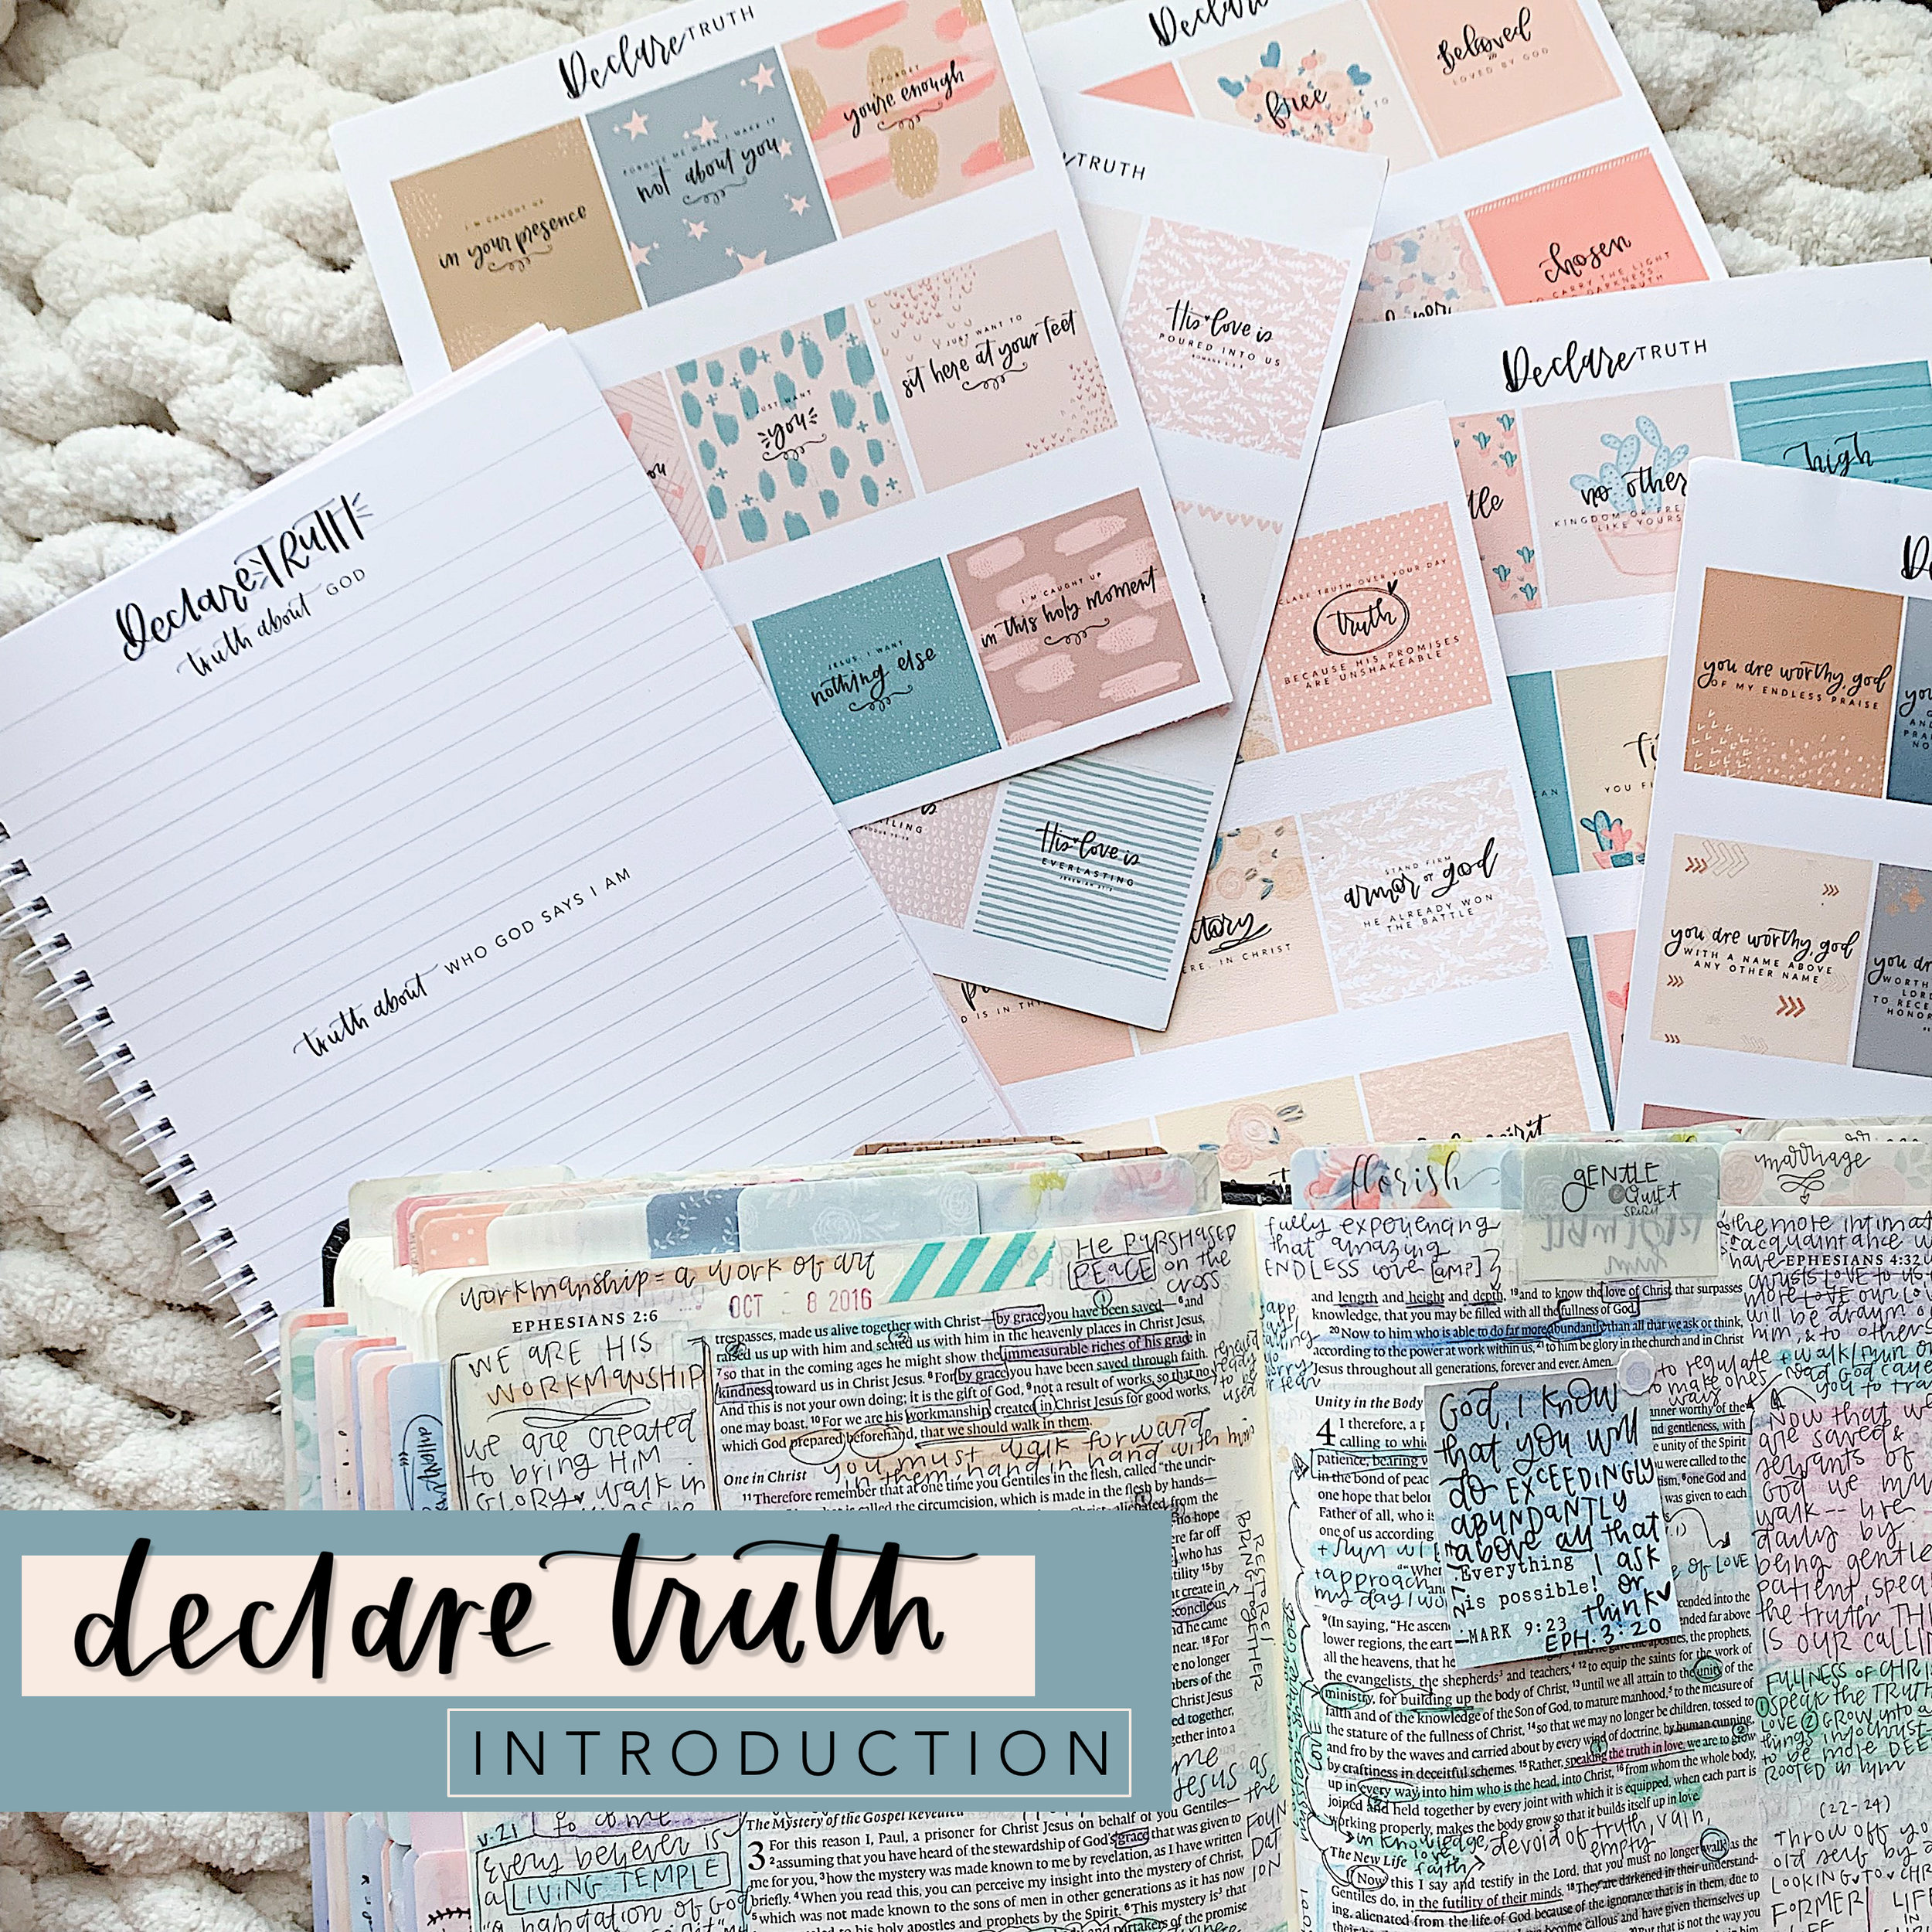 declare truth introduction